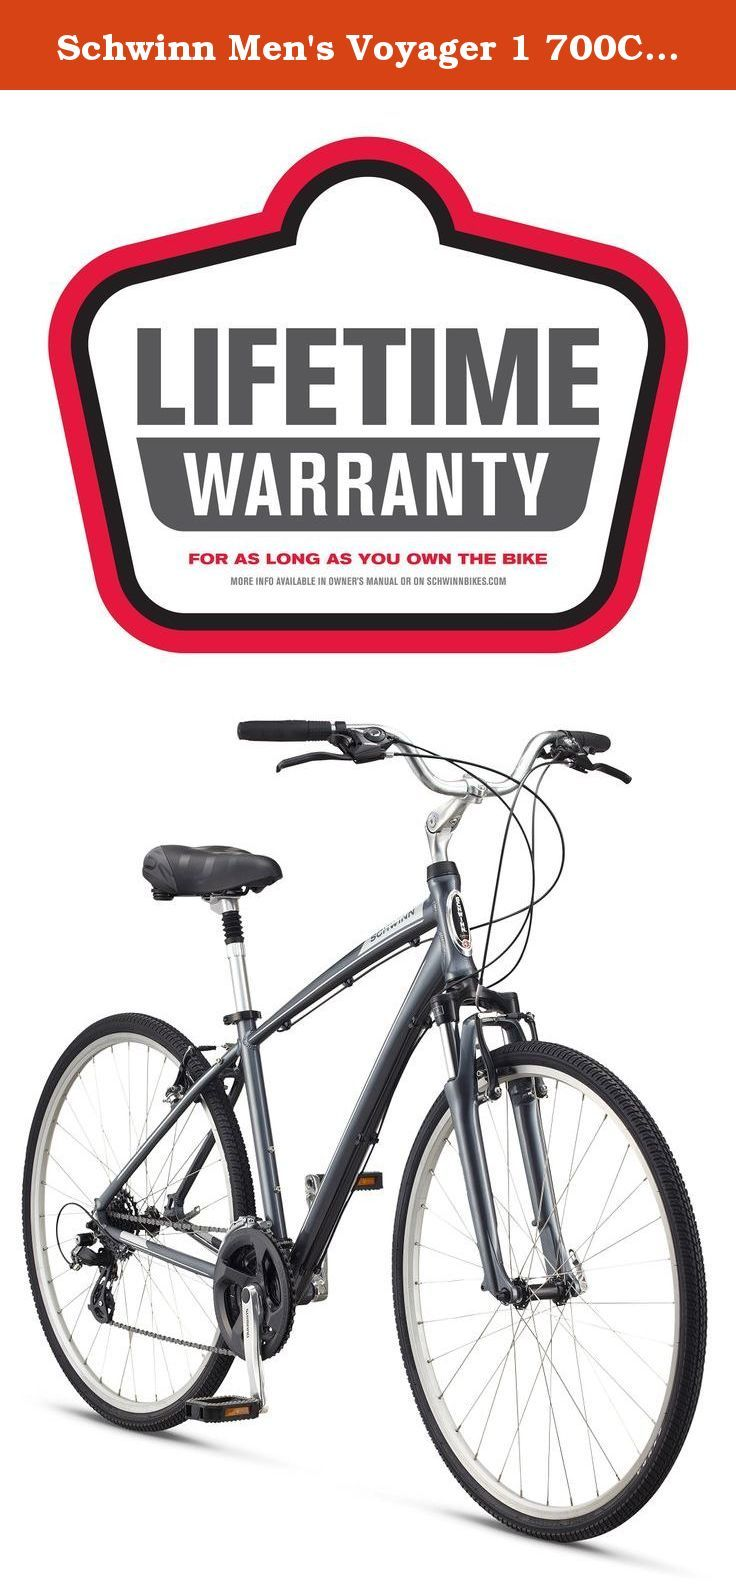 Schwinn Men S Voyager 1 700c Wheels Hybrid Bicycle Charcoal 16 Small Whether You Ride For Pleasure Fitness Or Out Of Comfort Bike Hybrid Bicycle Schwinn